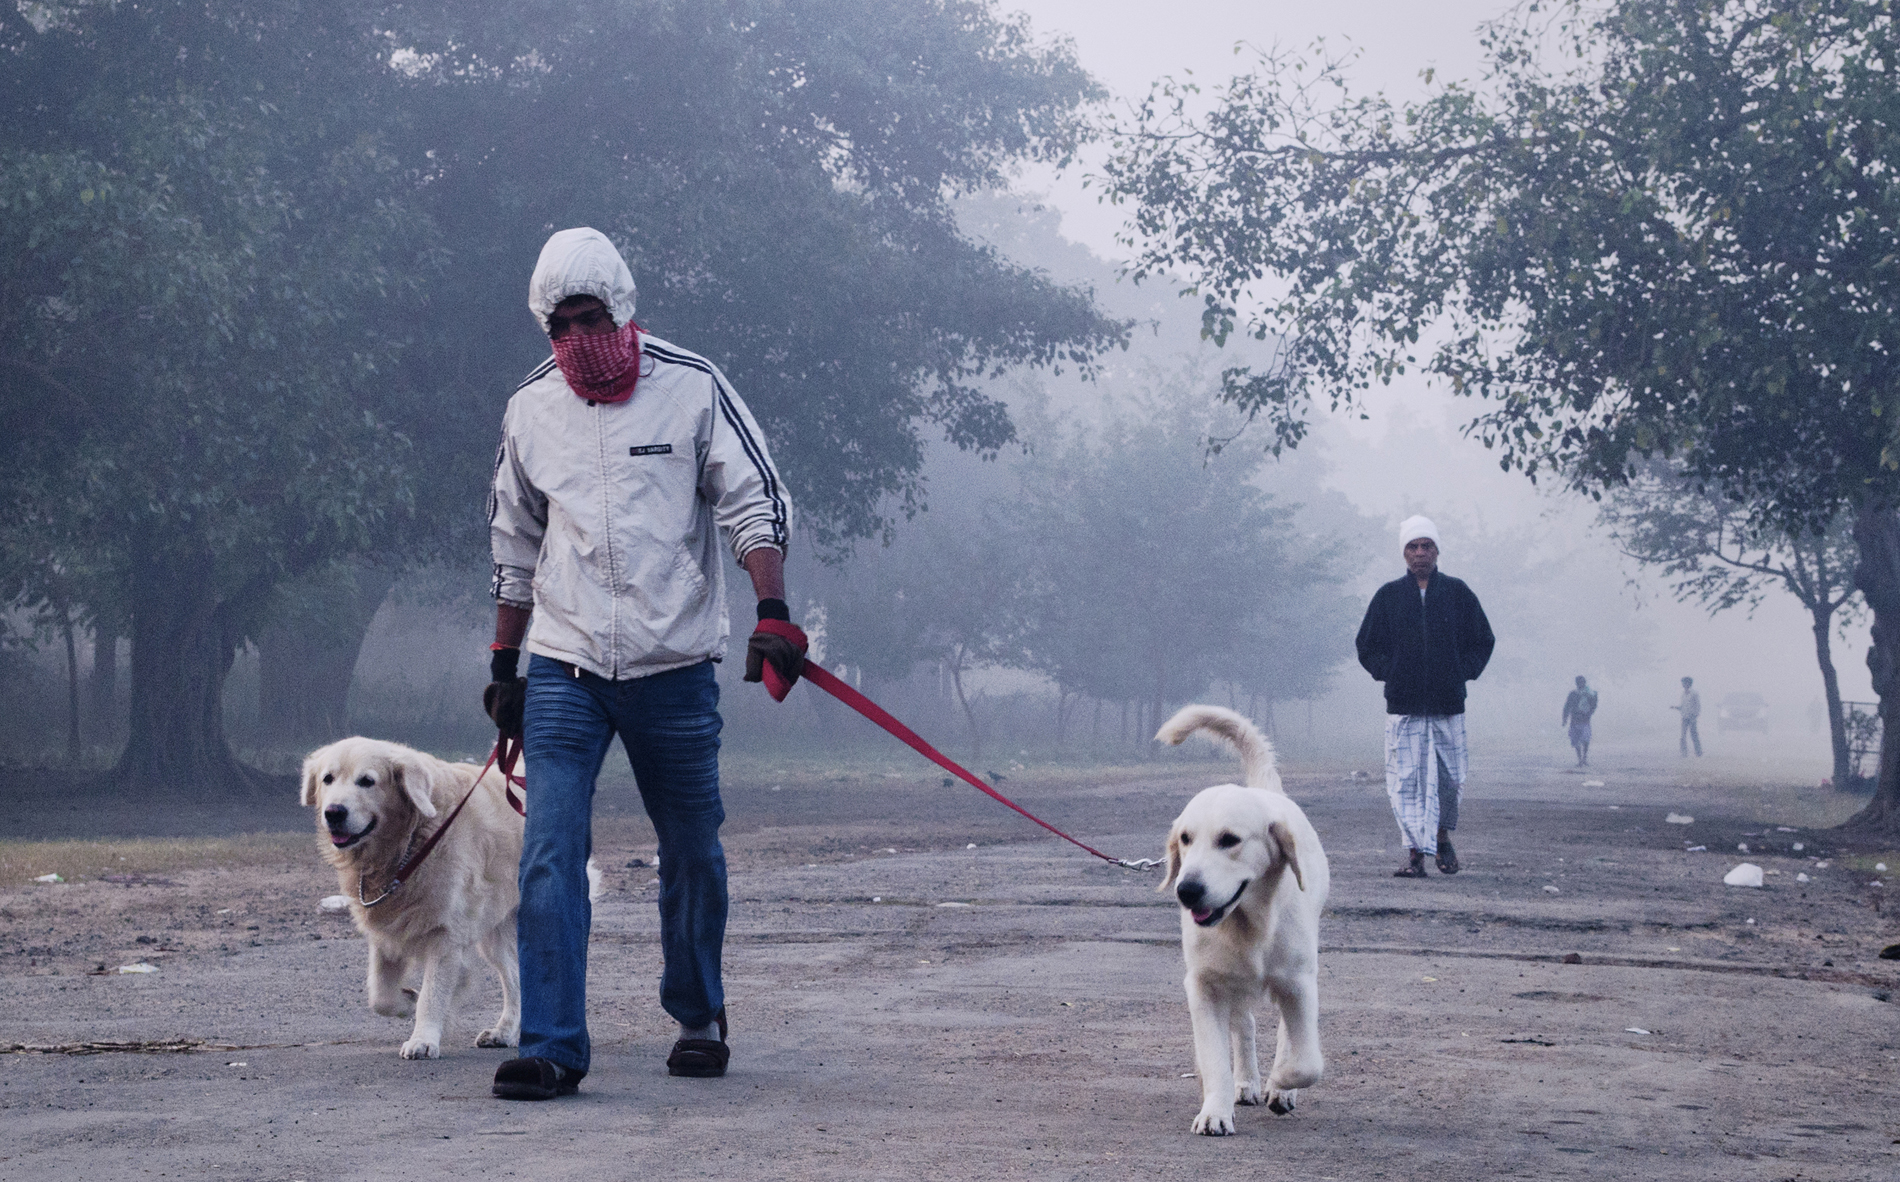 I took this picture at Maidan, Kolkata, West Bengal on a winter morning to capture the surreal essence of a misty morning.